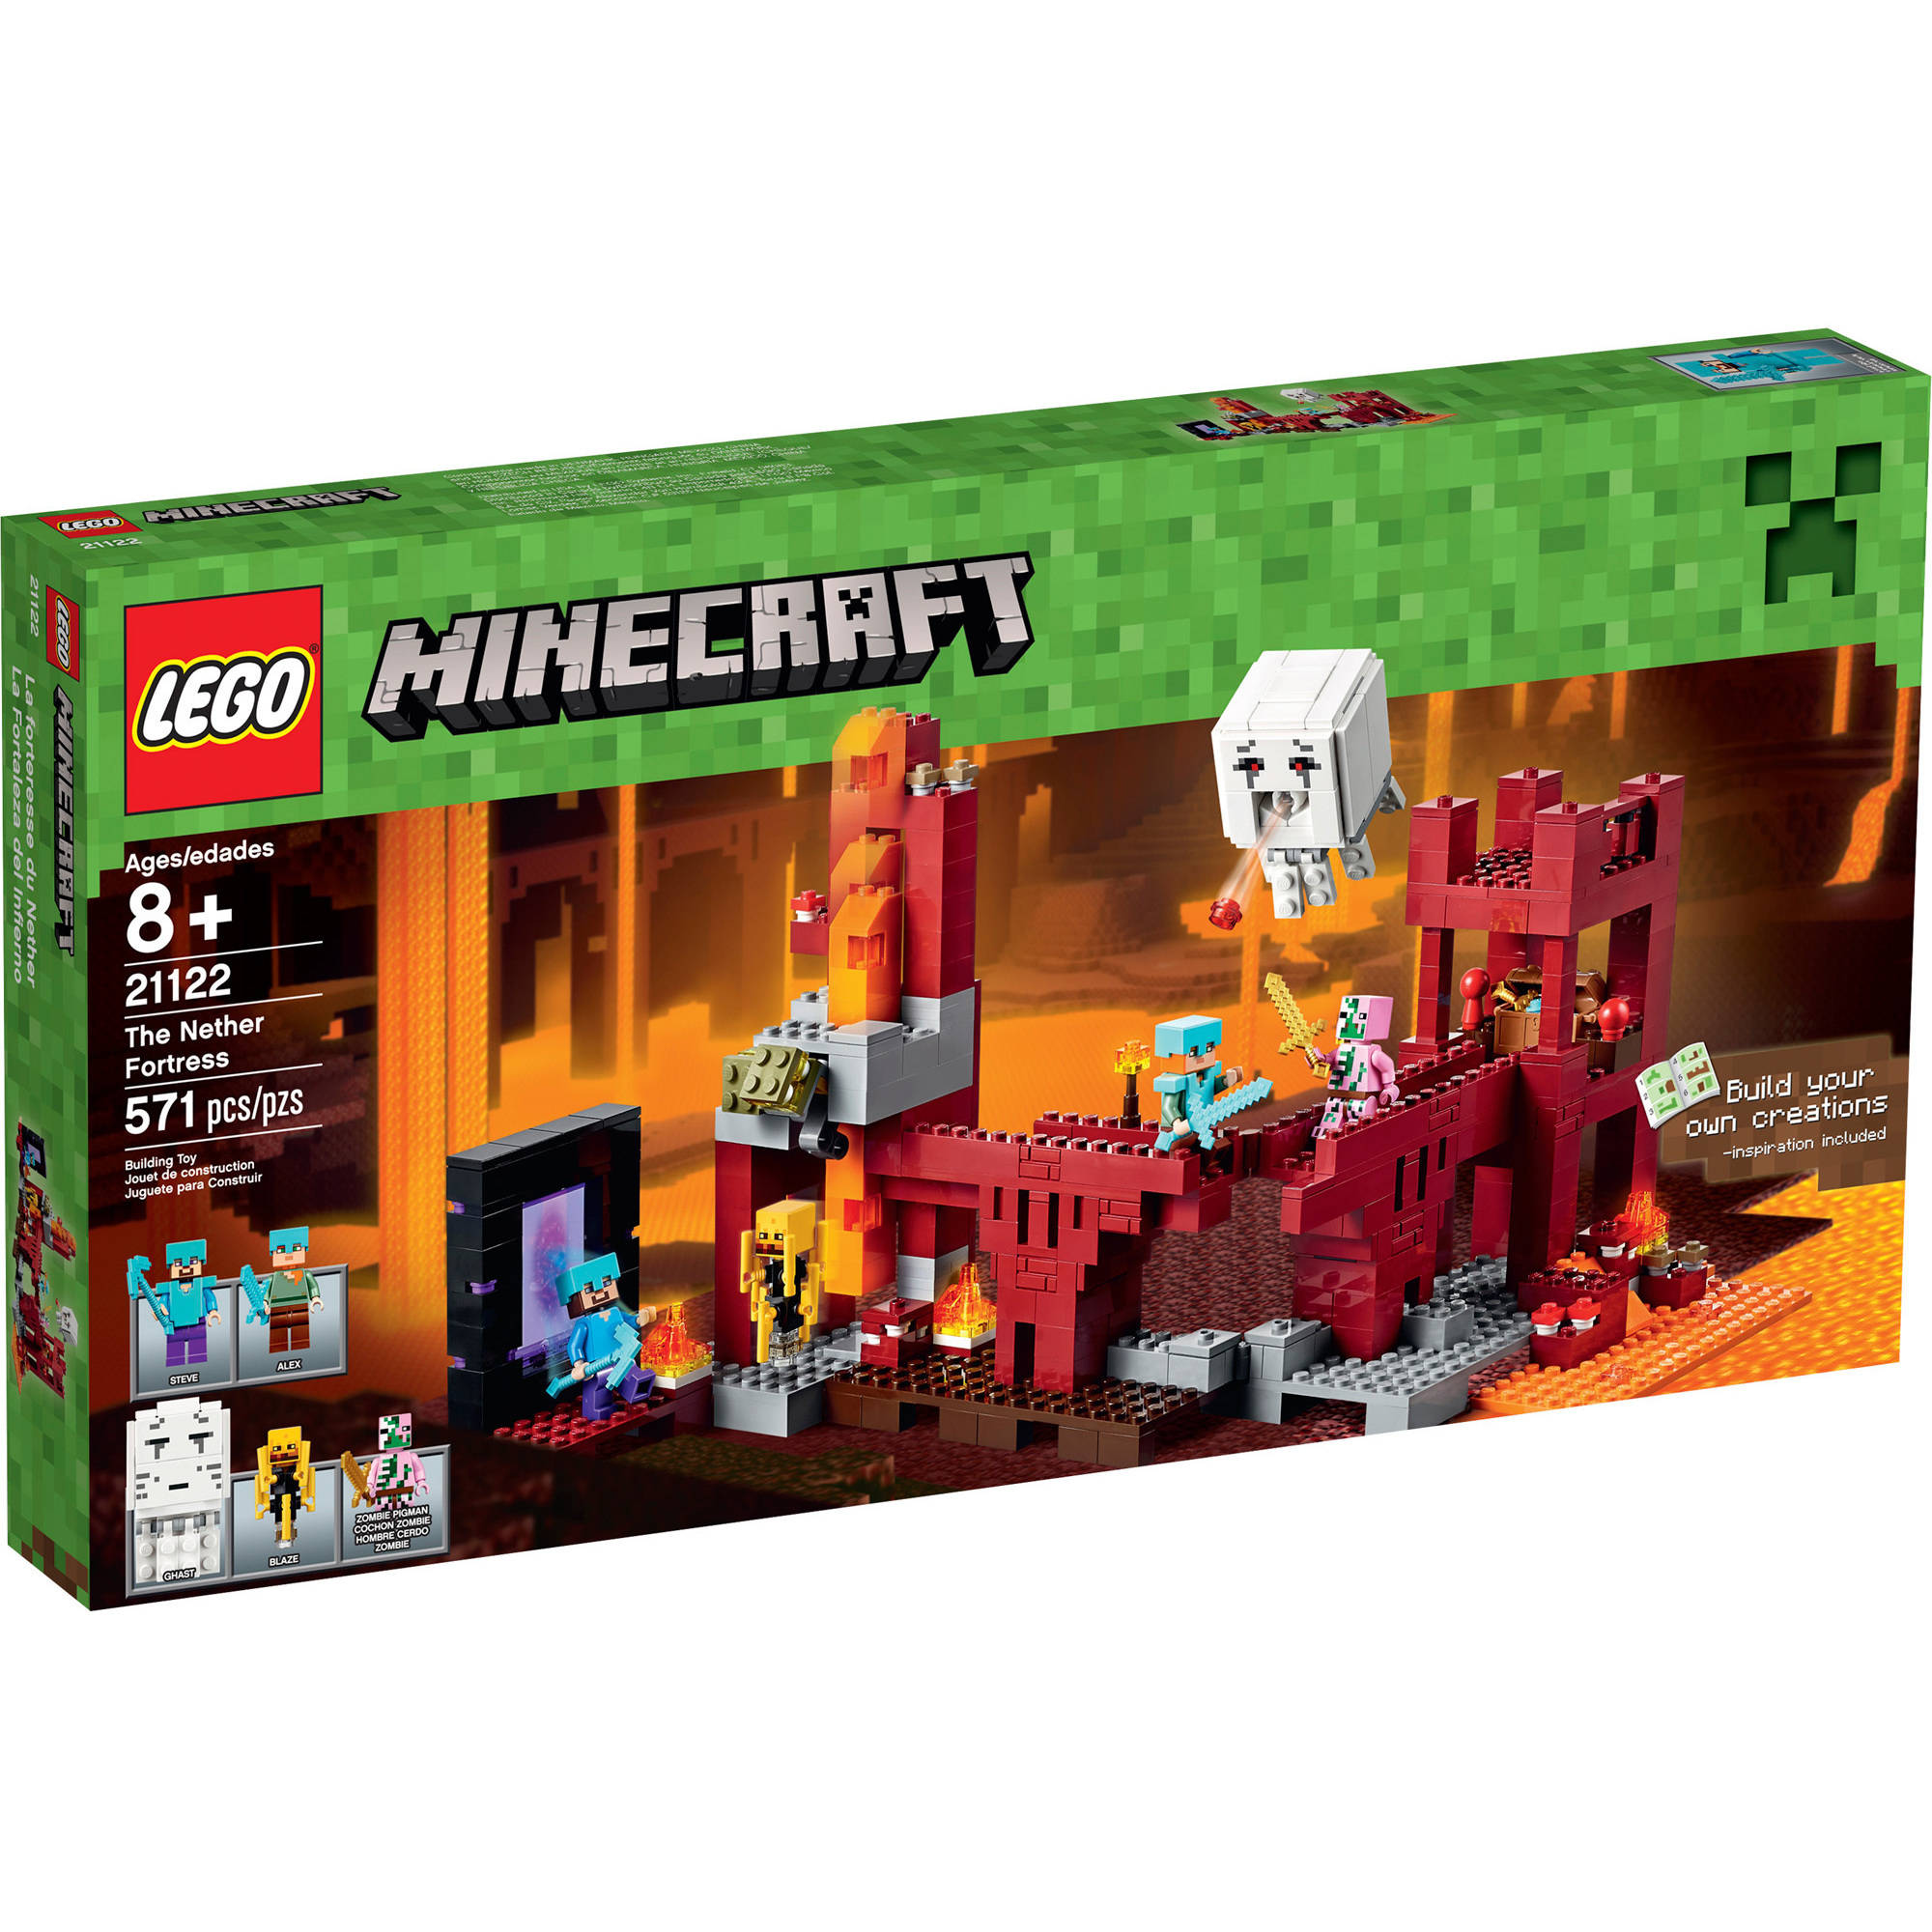 LEGO Minecraft The Nether Fortress, 21122